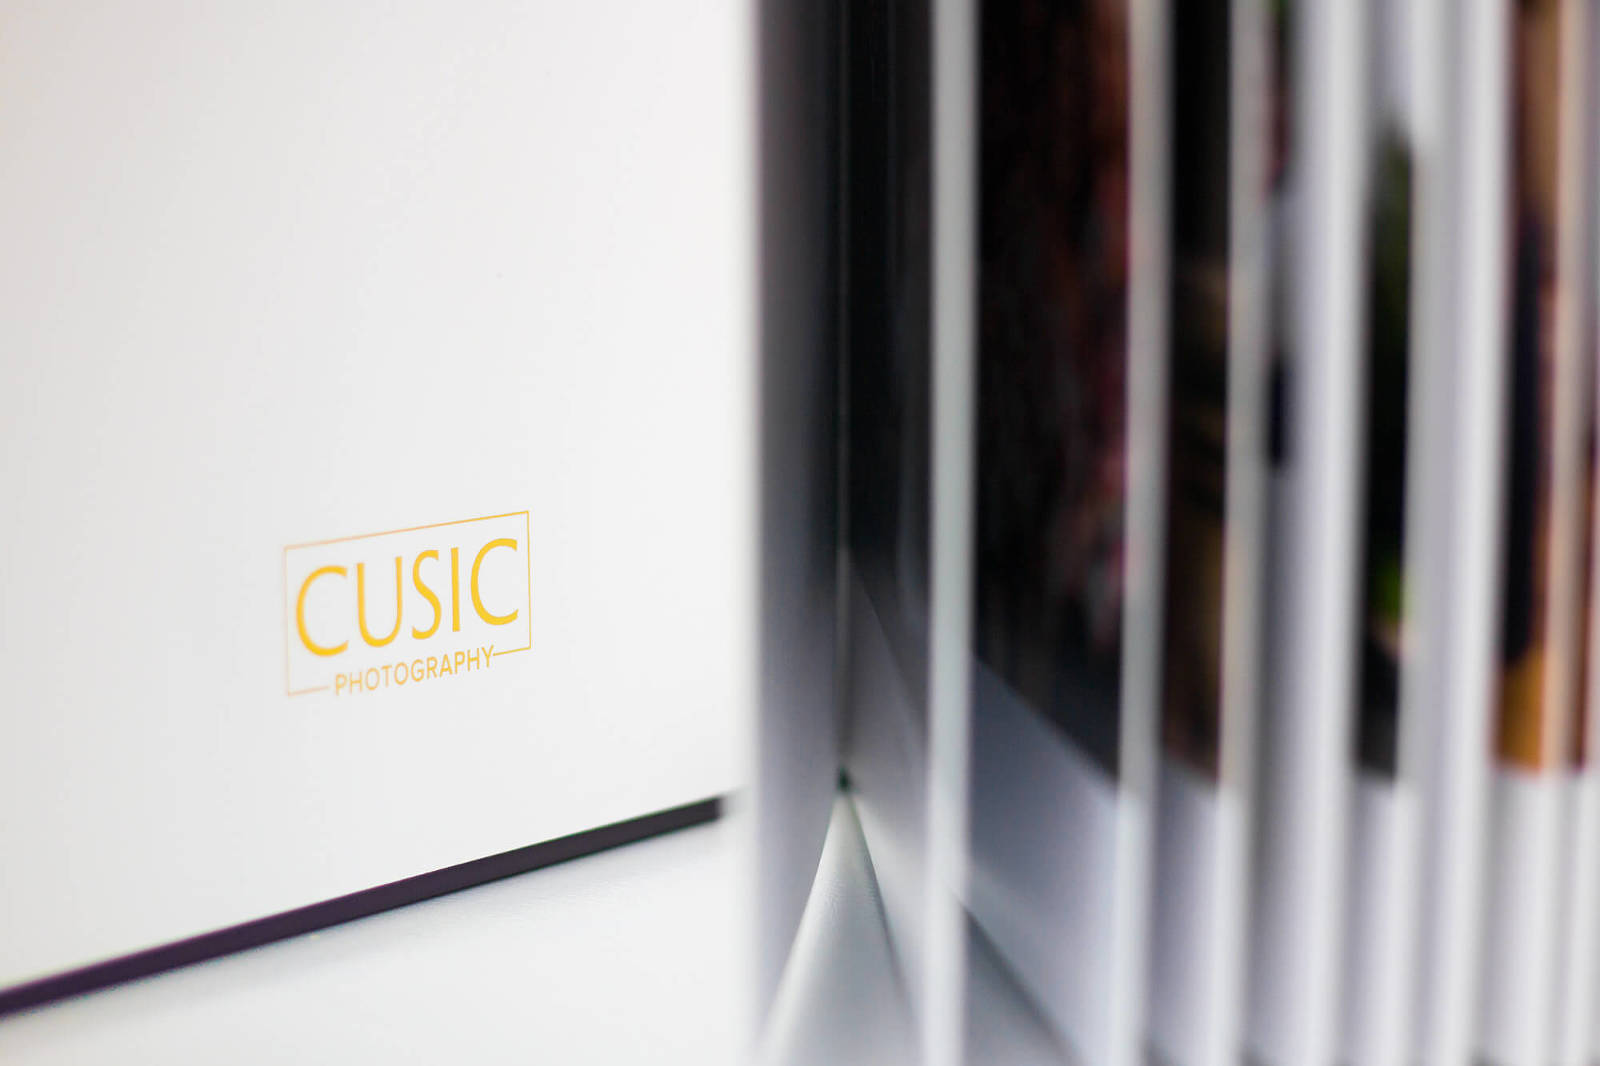 Wedding albums by Chicago photographer Candice C. Cusic